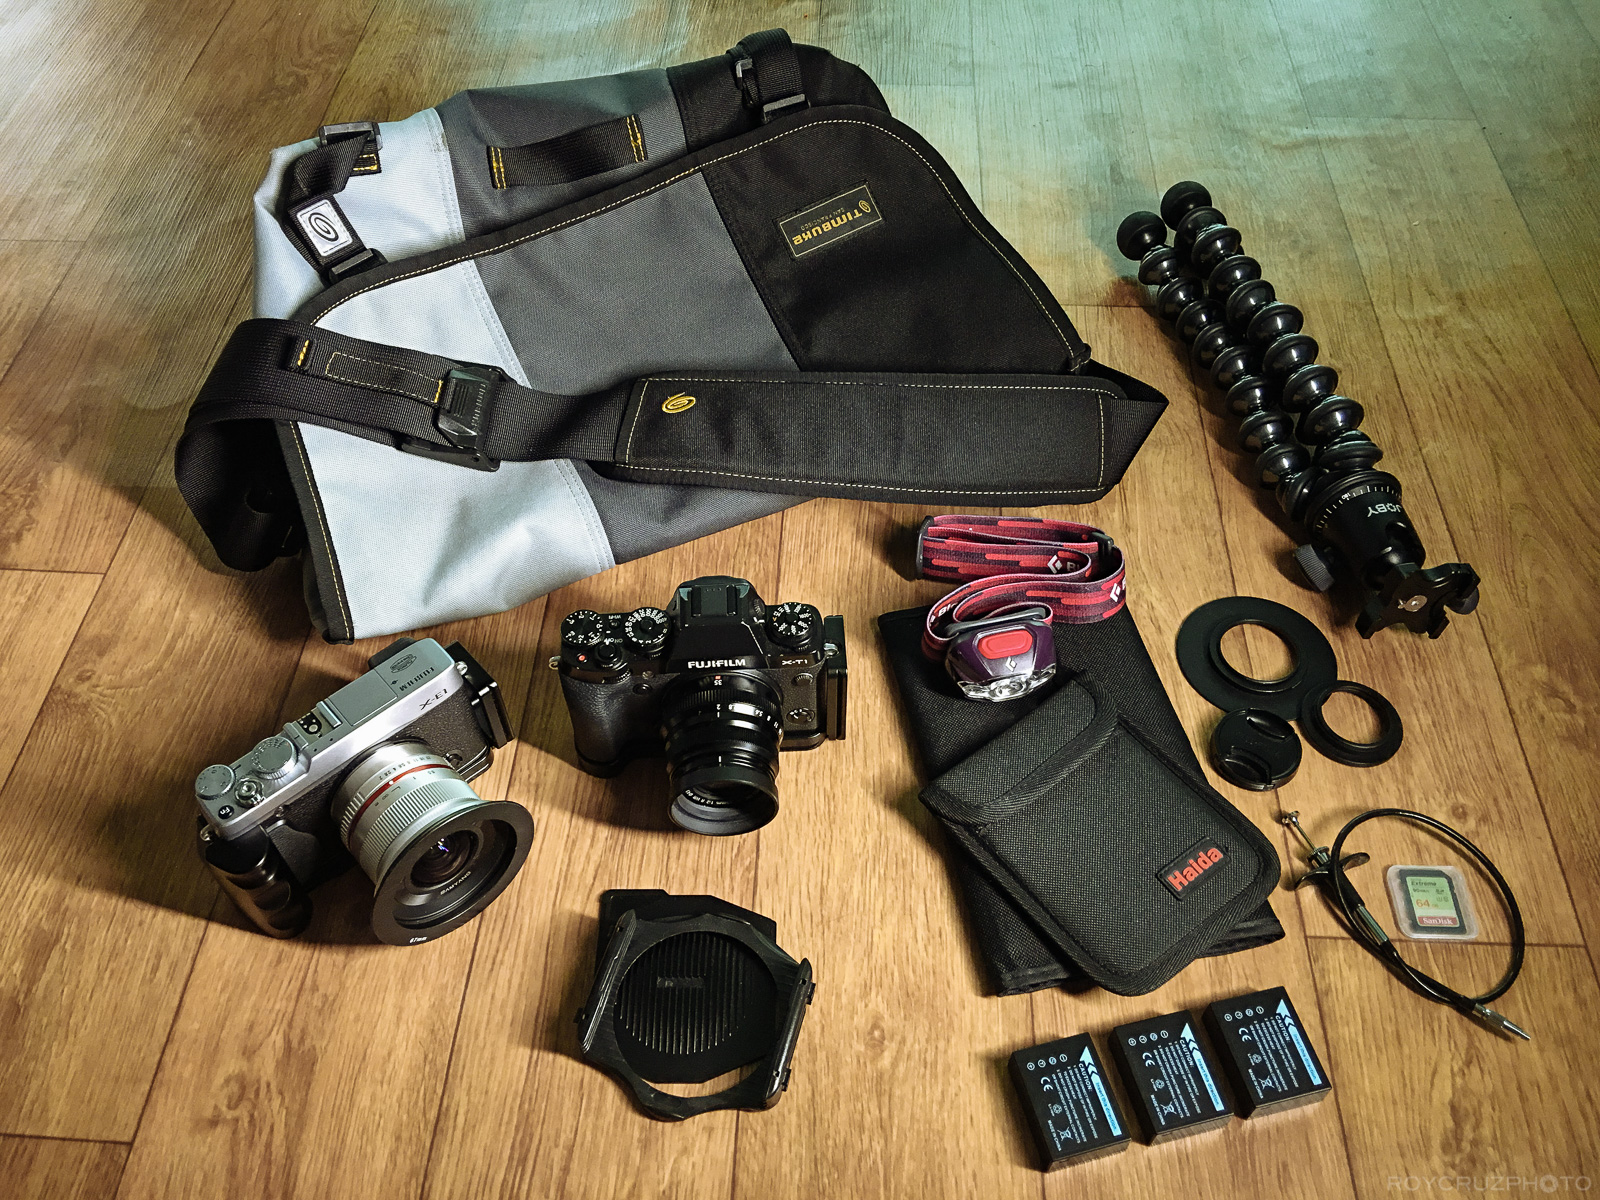 Fujifilm Travel Kit-1